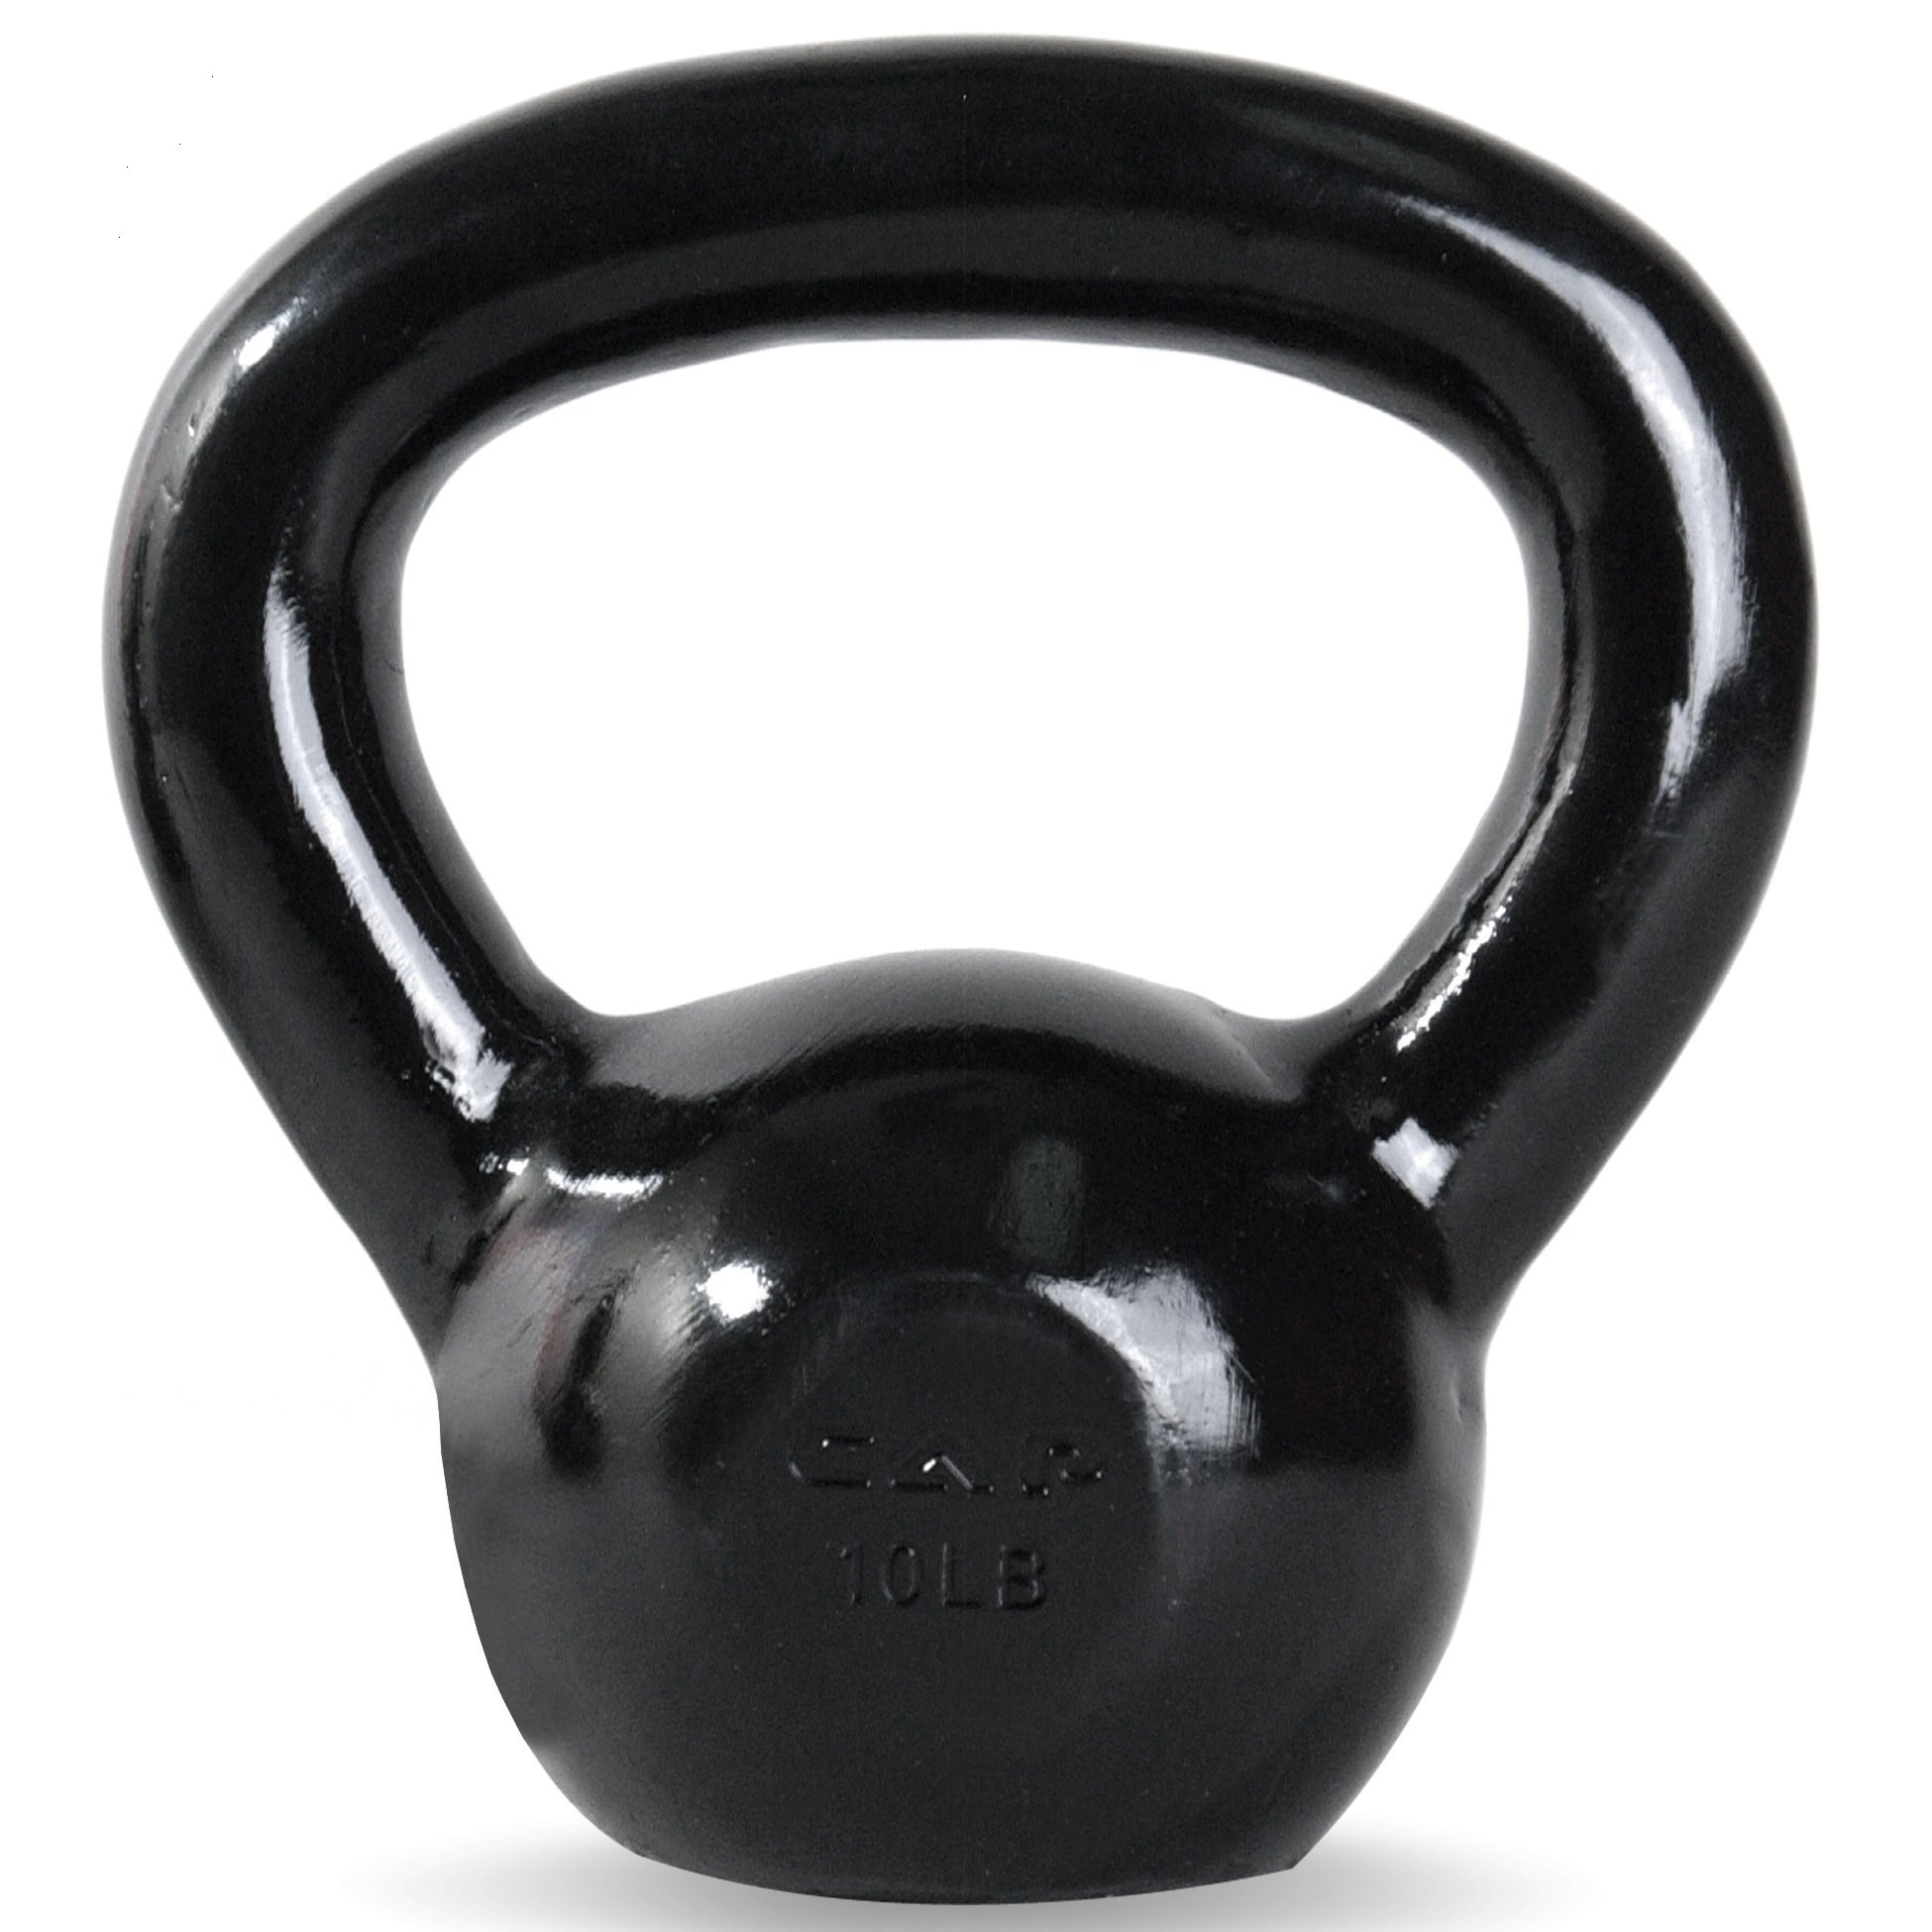 CAP Barbell SDK2-010 Enamel Coated Cast Iron Kettlebell, 10 lb, Black